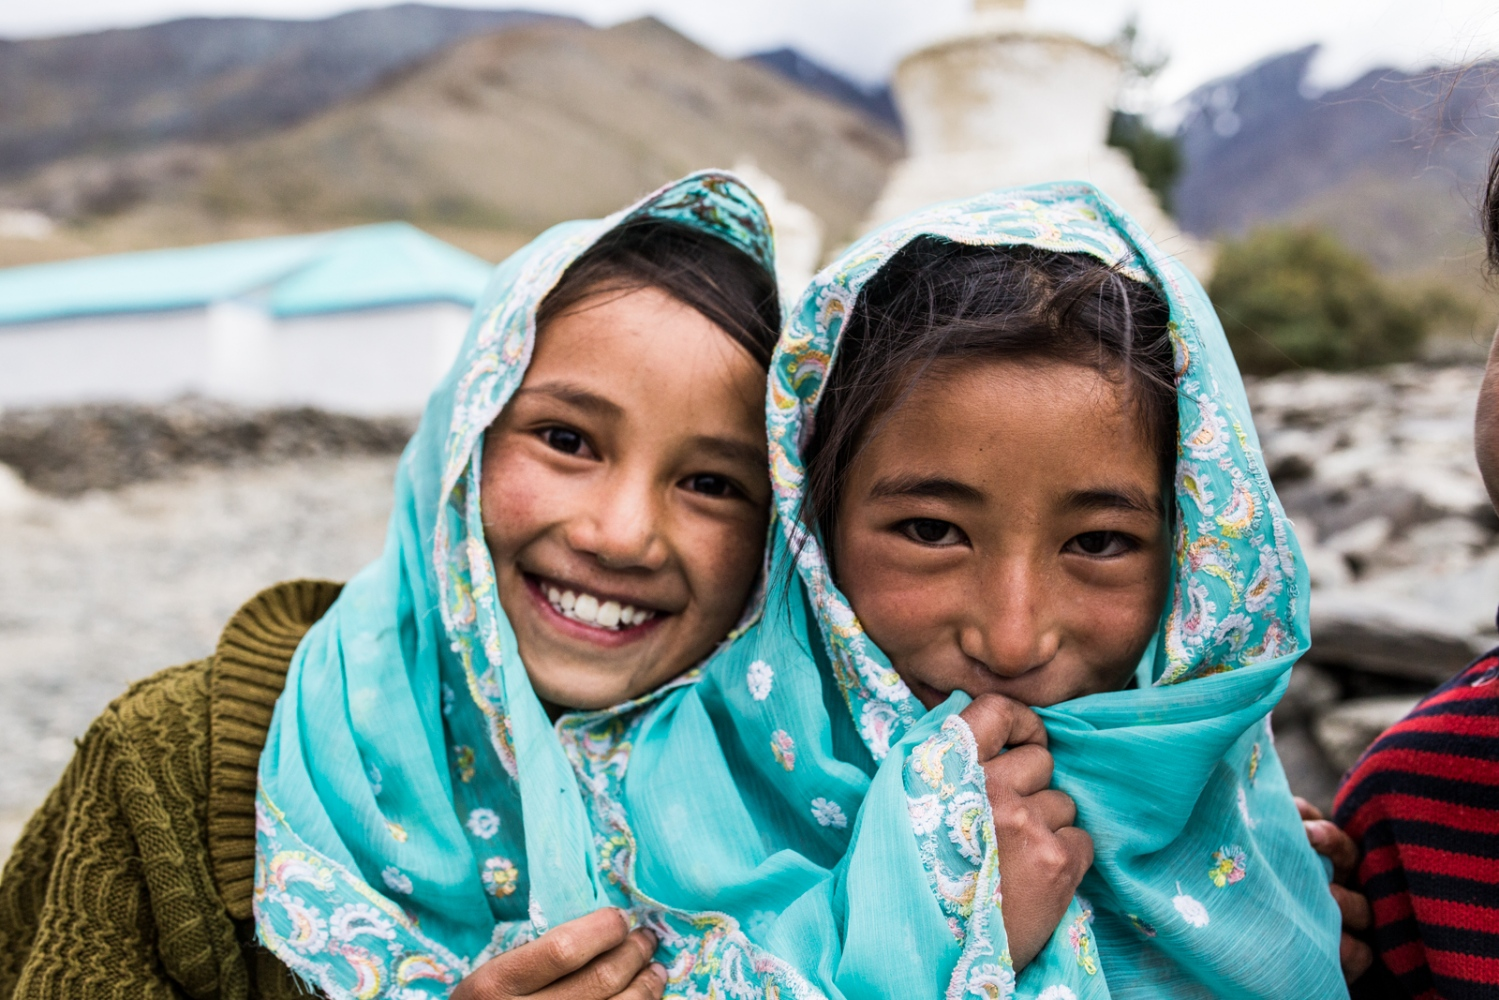 Two young girls of Kumik pose for a portrait. The younger generations of Kumik face an unknown future.